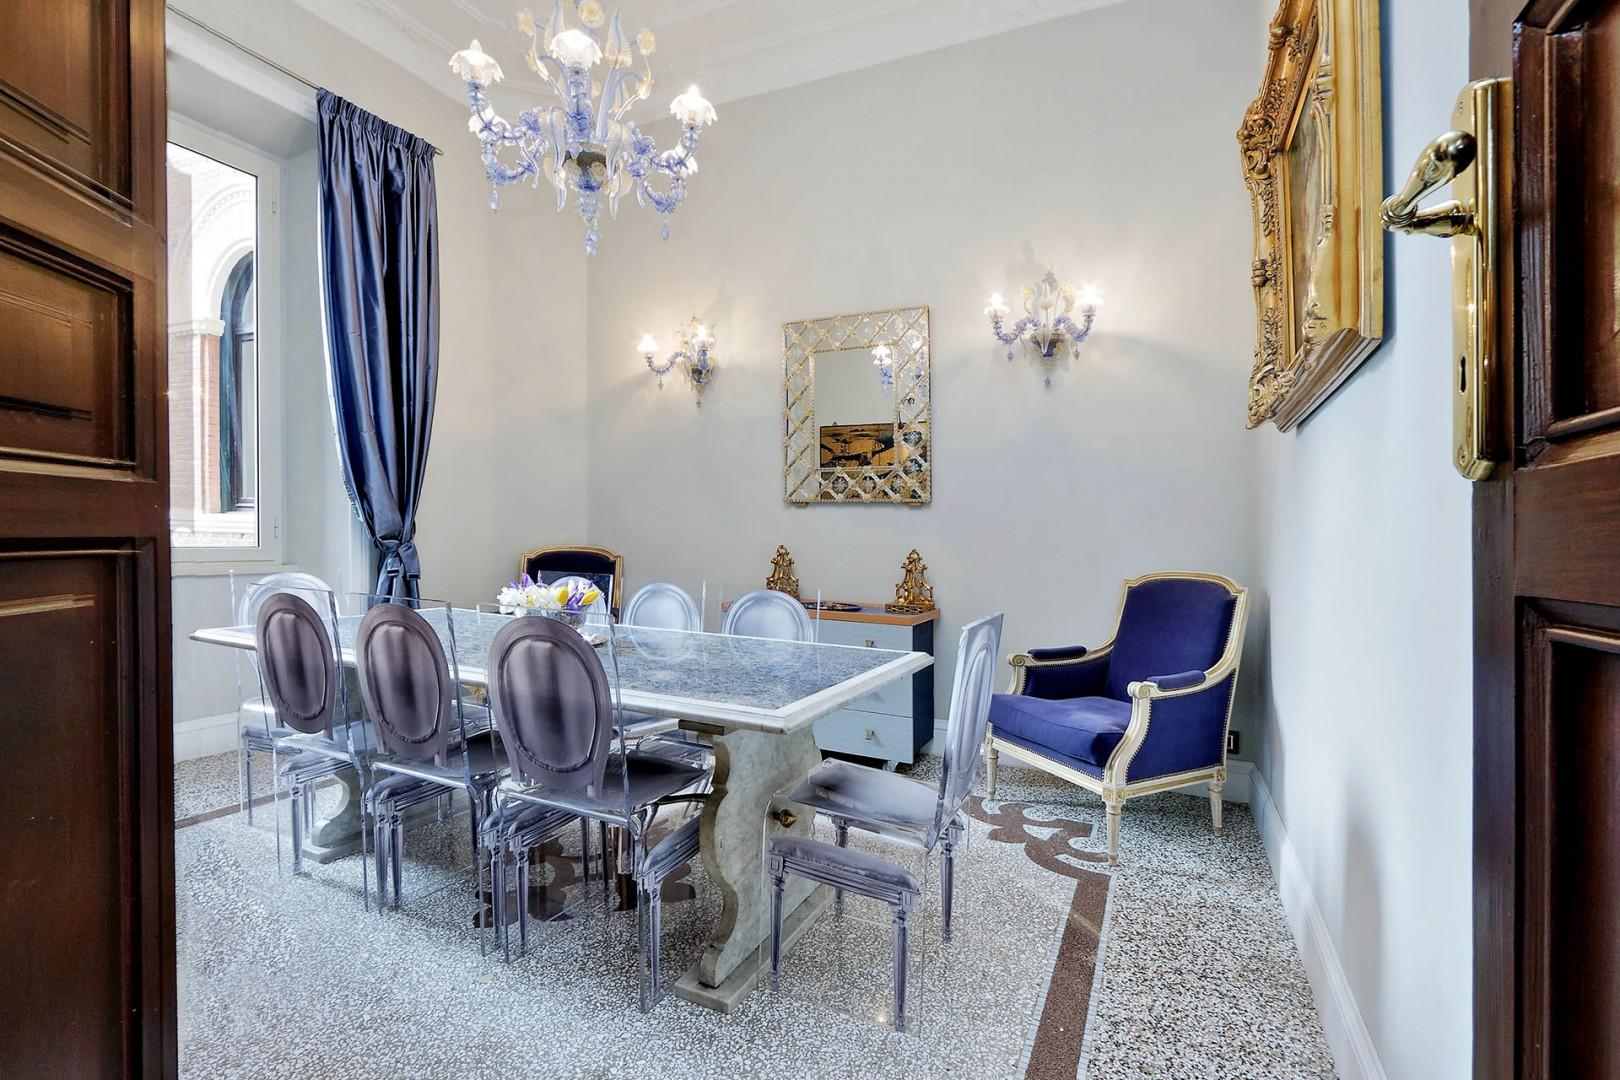 The dining room is stunning in dramatic blues.